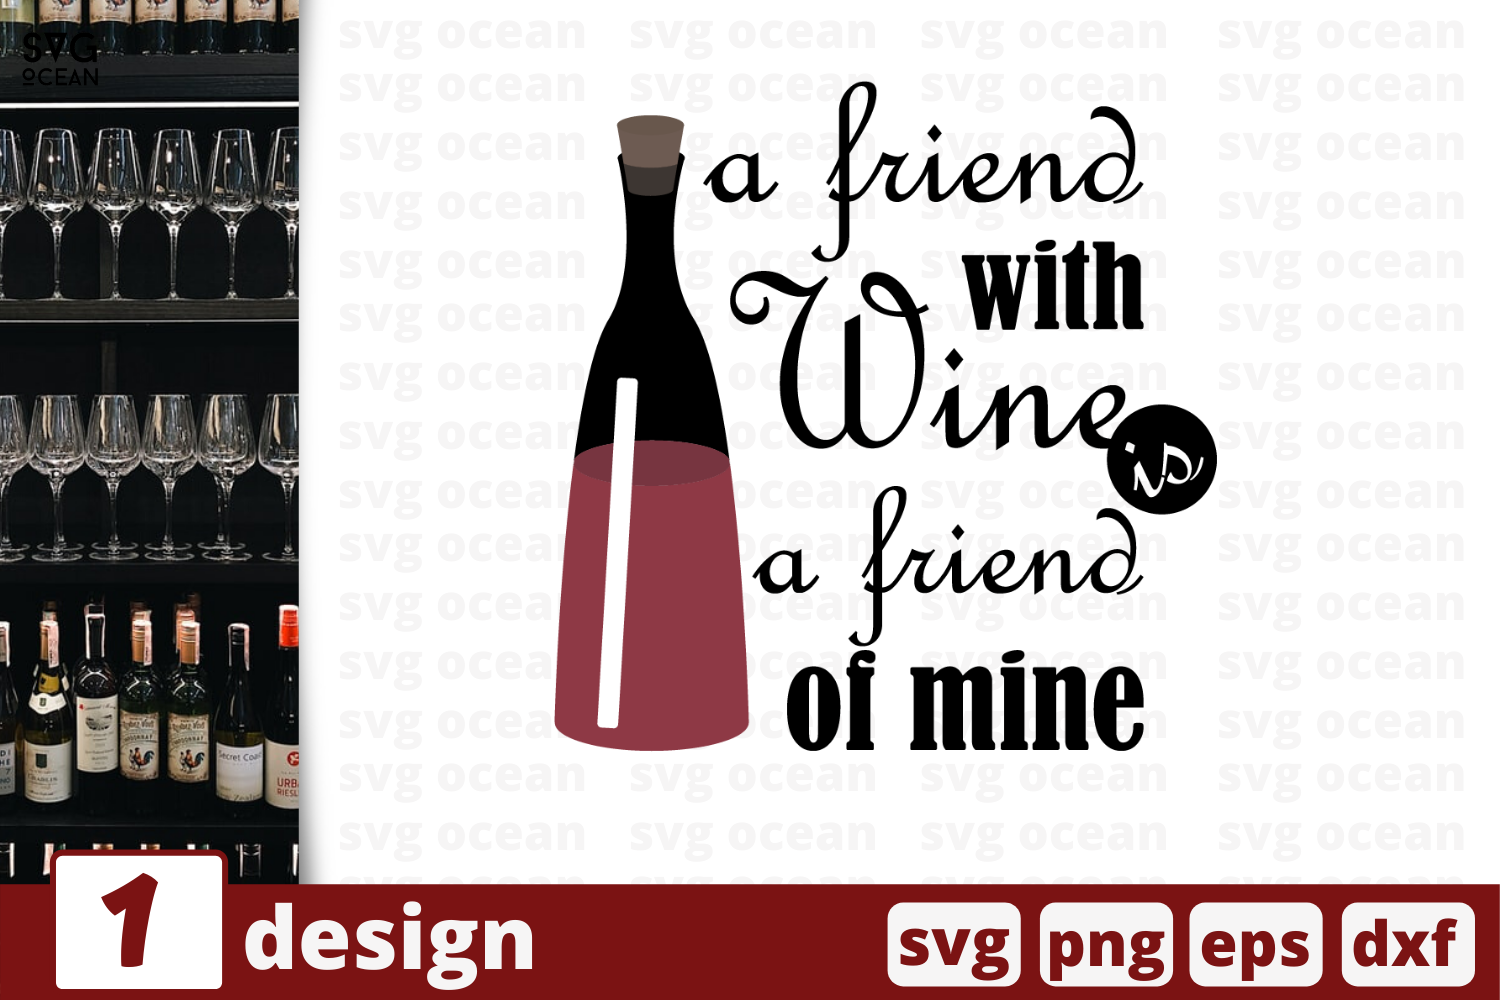 35+ Because Mom's Can't Live On Coffee Alone Wine Svg Dxf Eps Png Cut File Ò Cricut Ò Silhouette Design